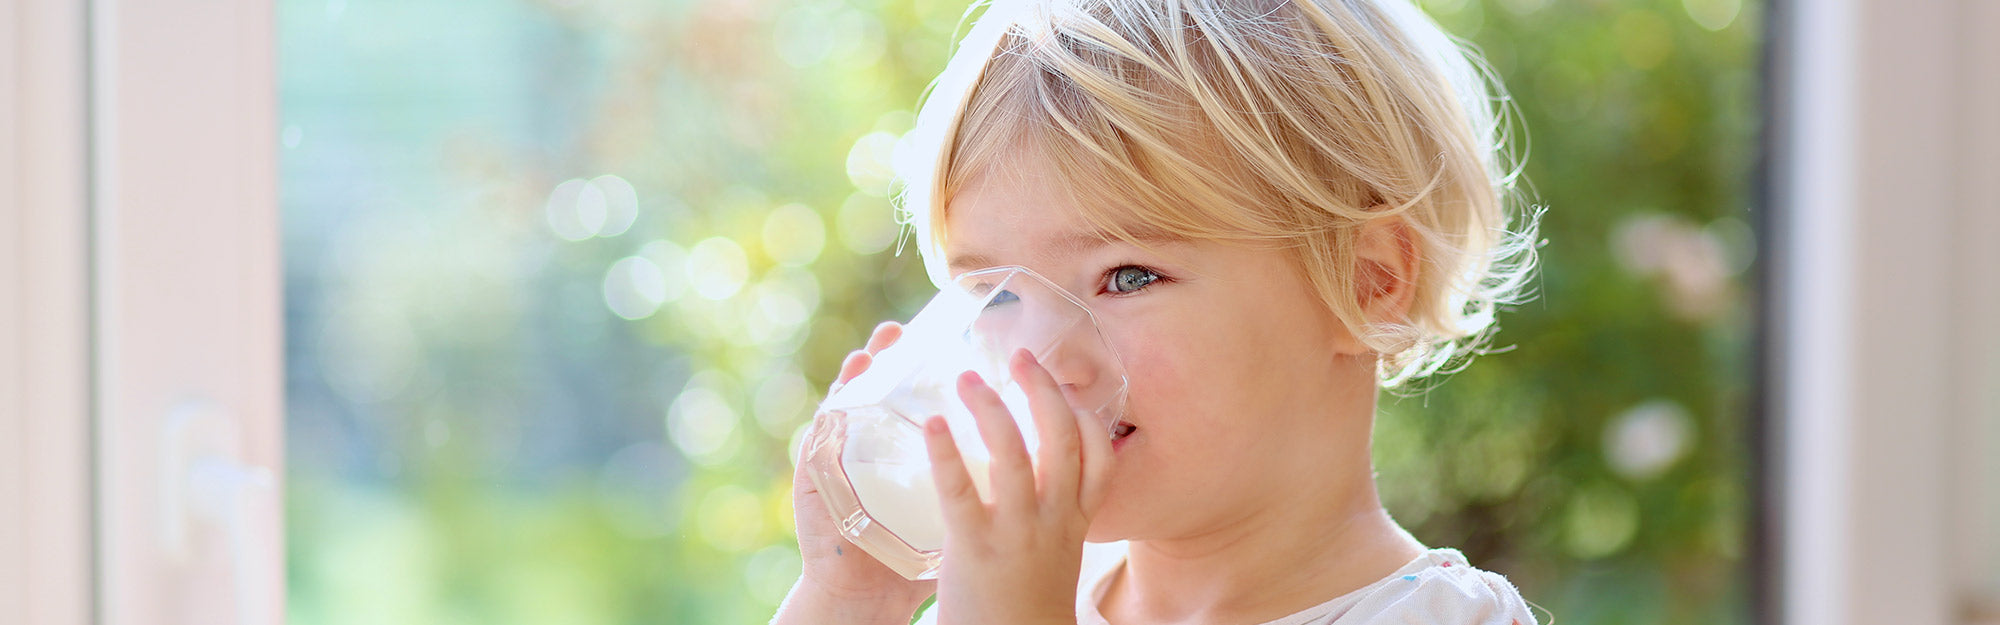 blond toddler drinking a glass of milk